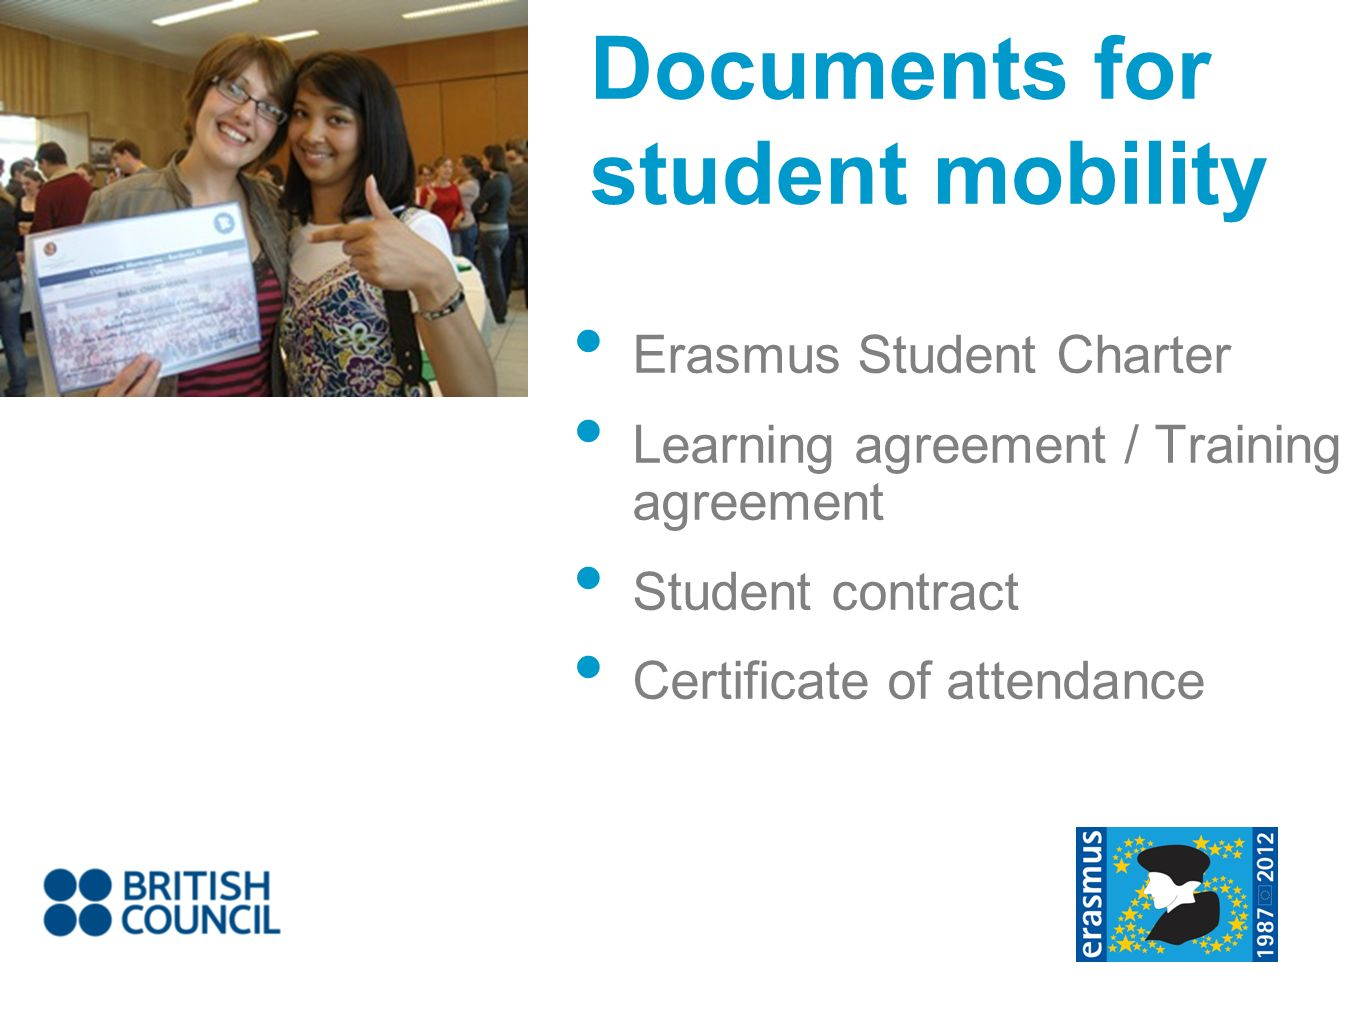 Erasmus Student Charter Learning agreement / Training agreement Student contract Certificate of attendance Documents for student mobility